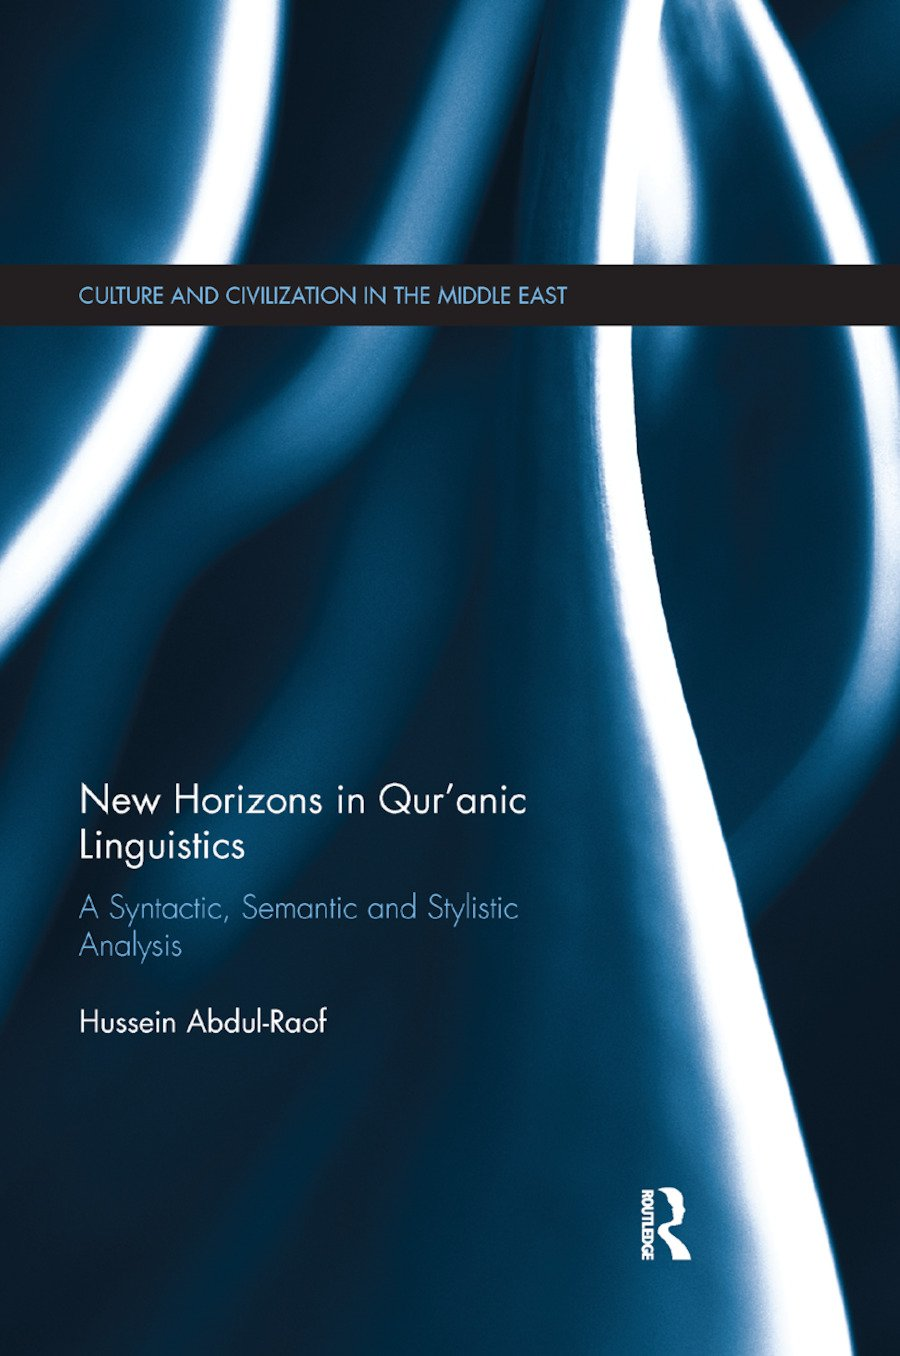 New Horizons in Qur'anic Linguistics: A Syntactic, Semantic and Stylistic Analysis book cover